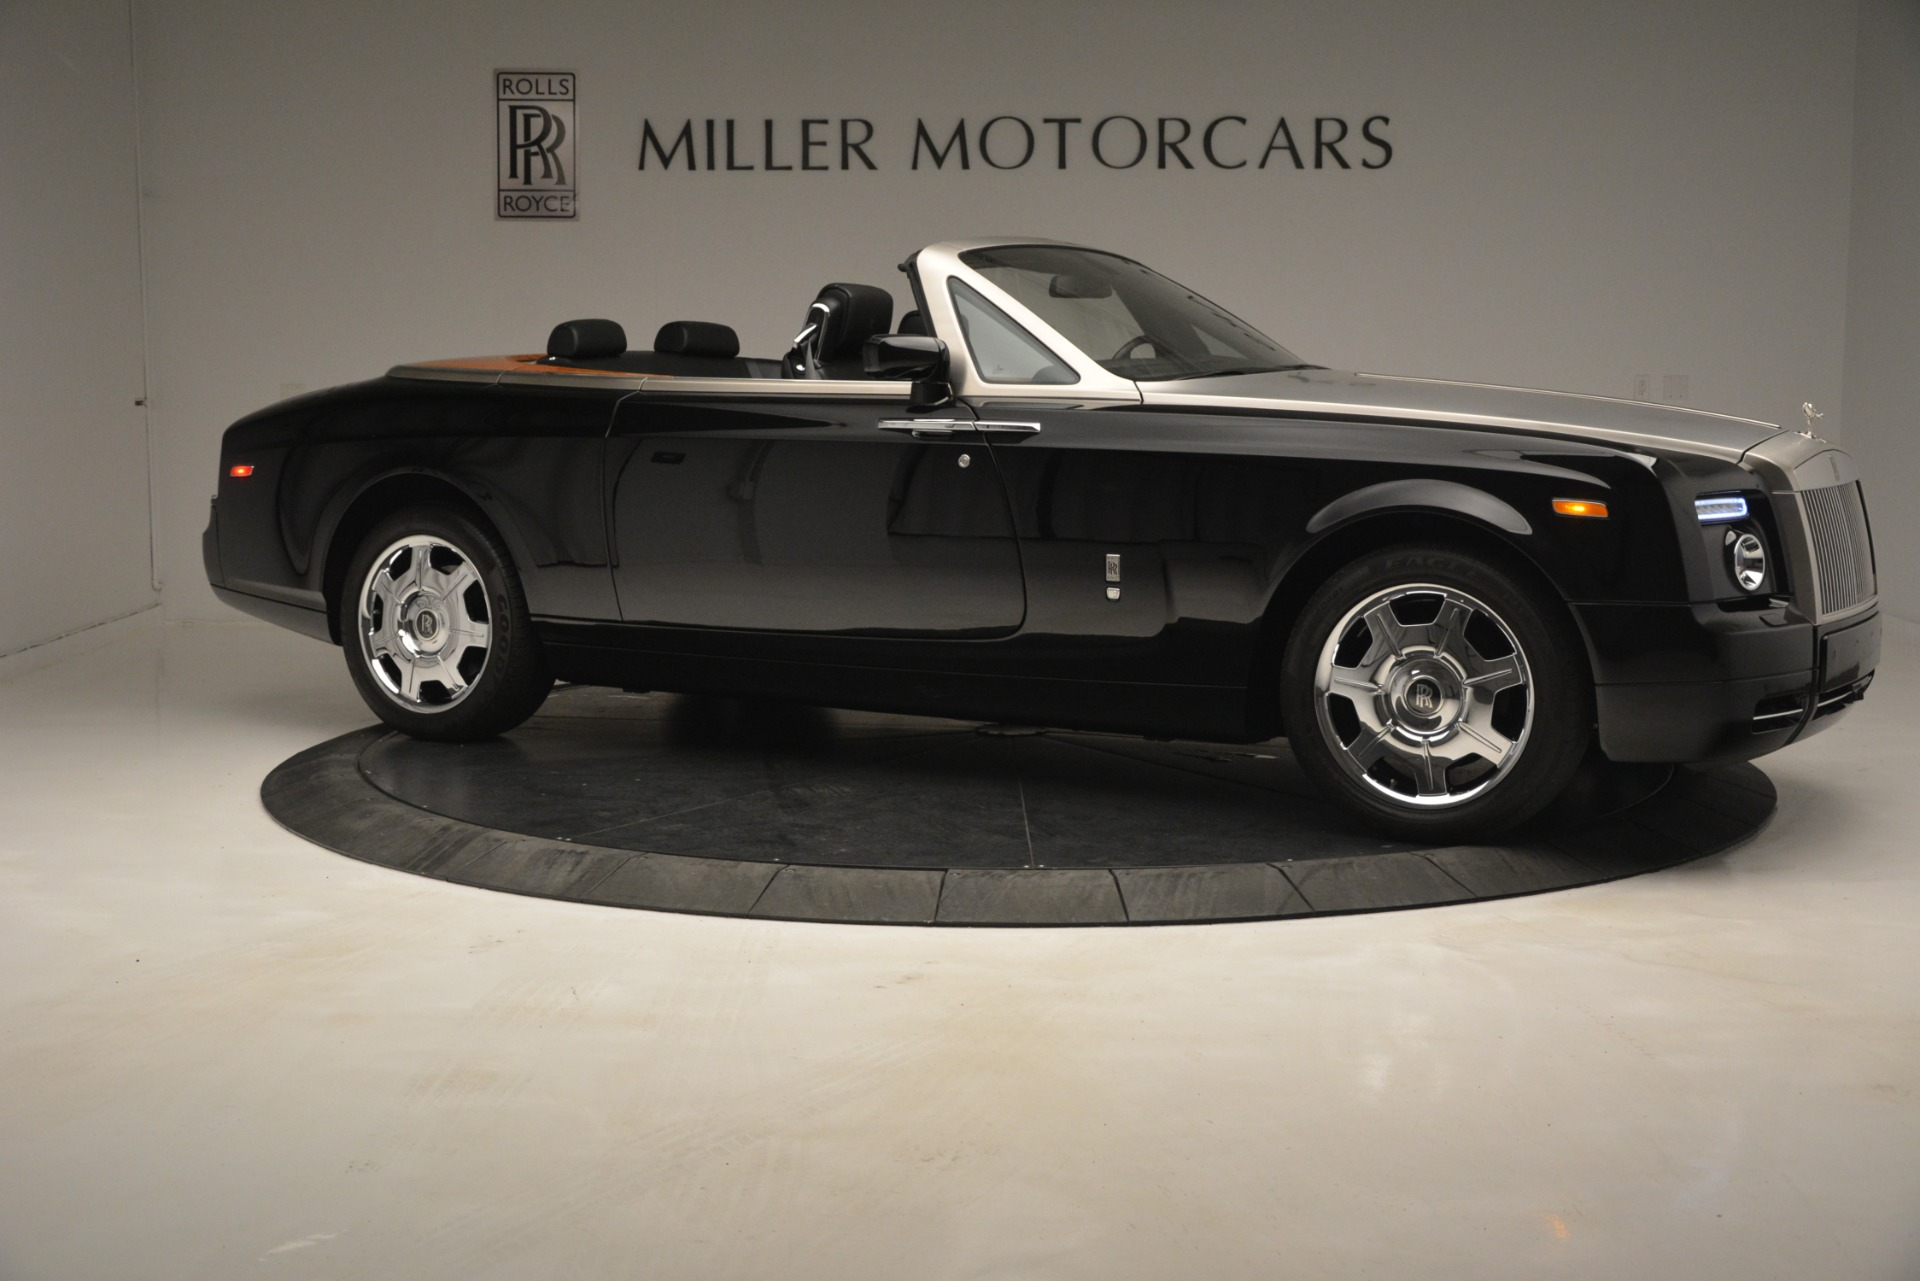 Used 2008 Rolls-Royce Phantom Drophead Coupe  For Sale In Westport, CT 3000_p14